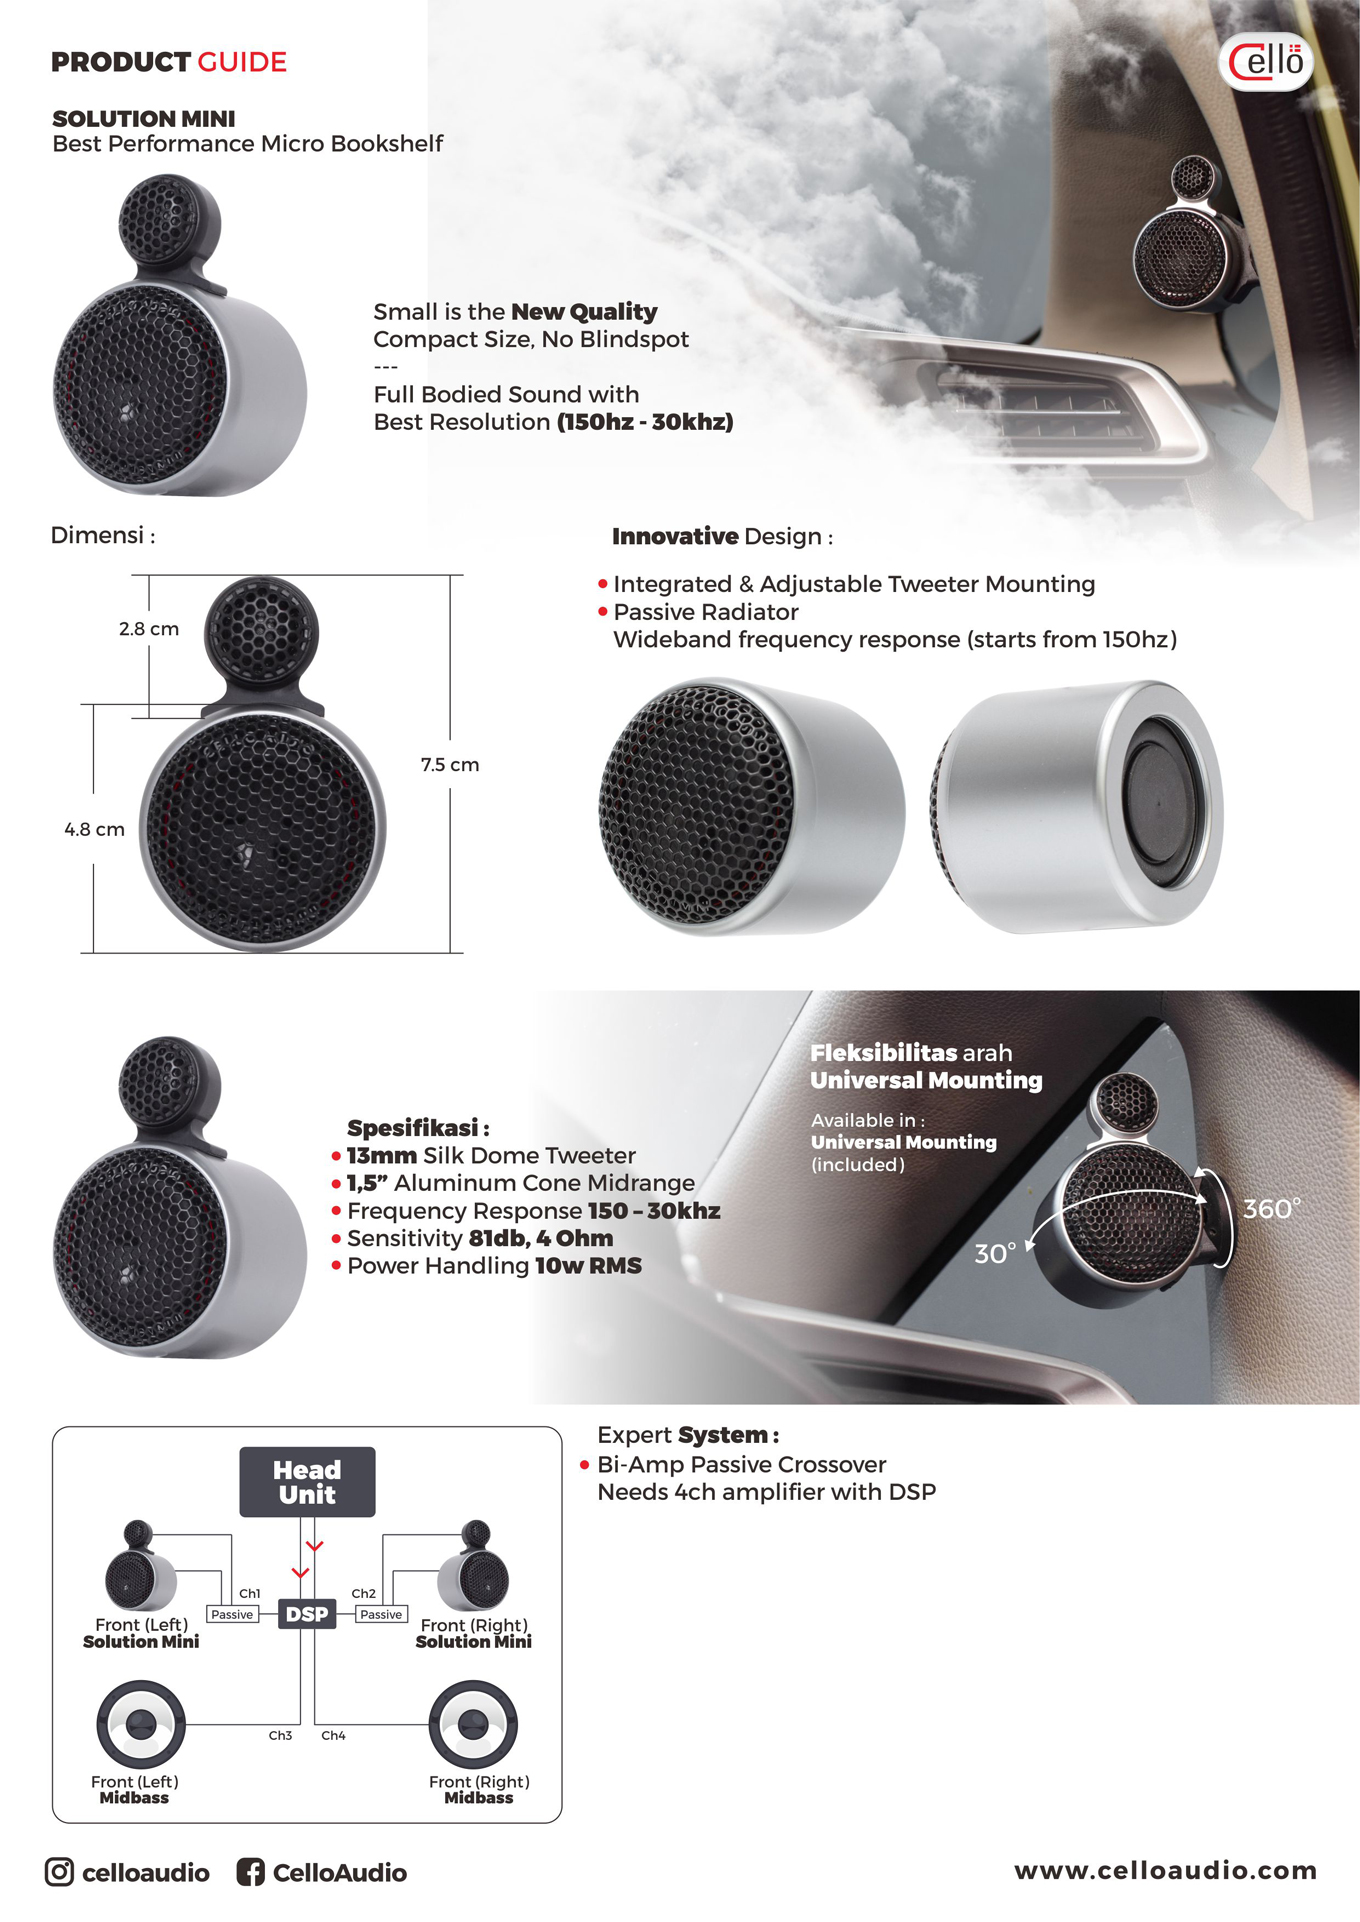 Product-Guide-Solution-Mini-2020-2021